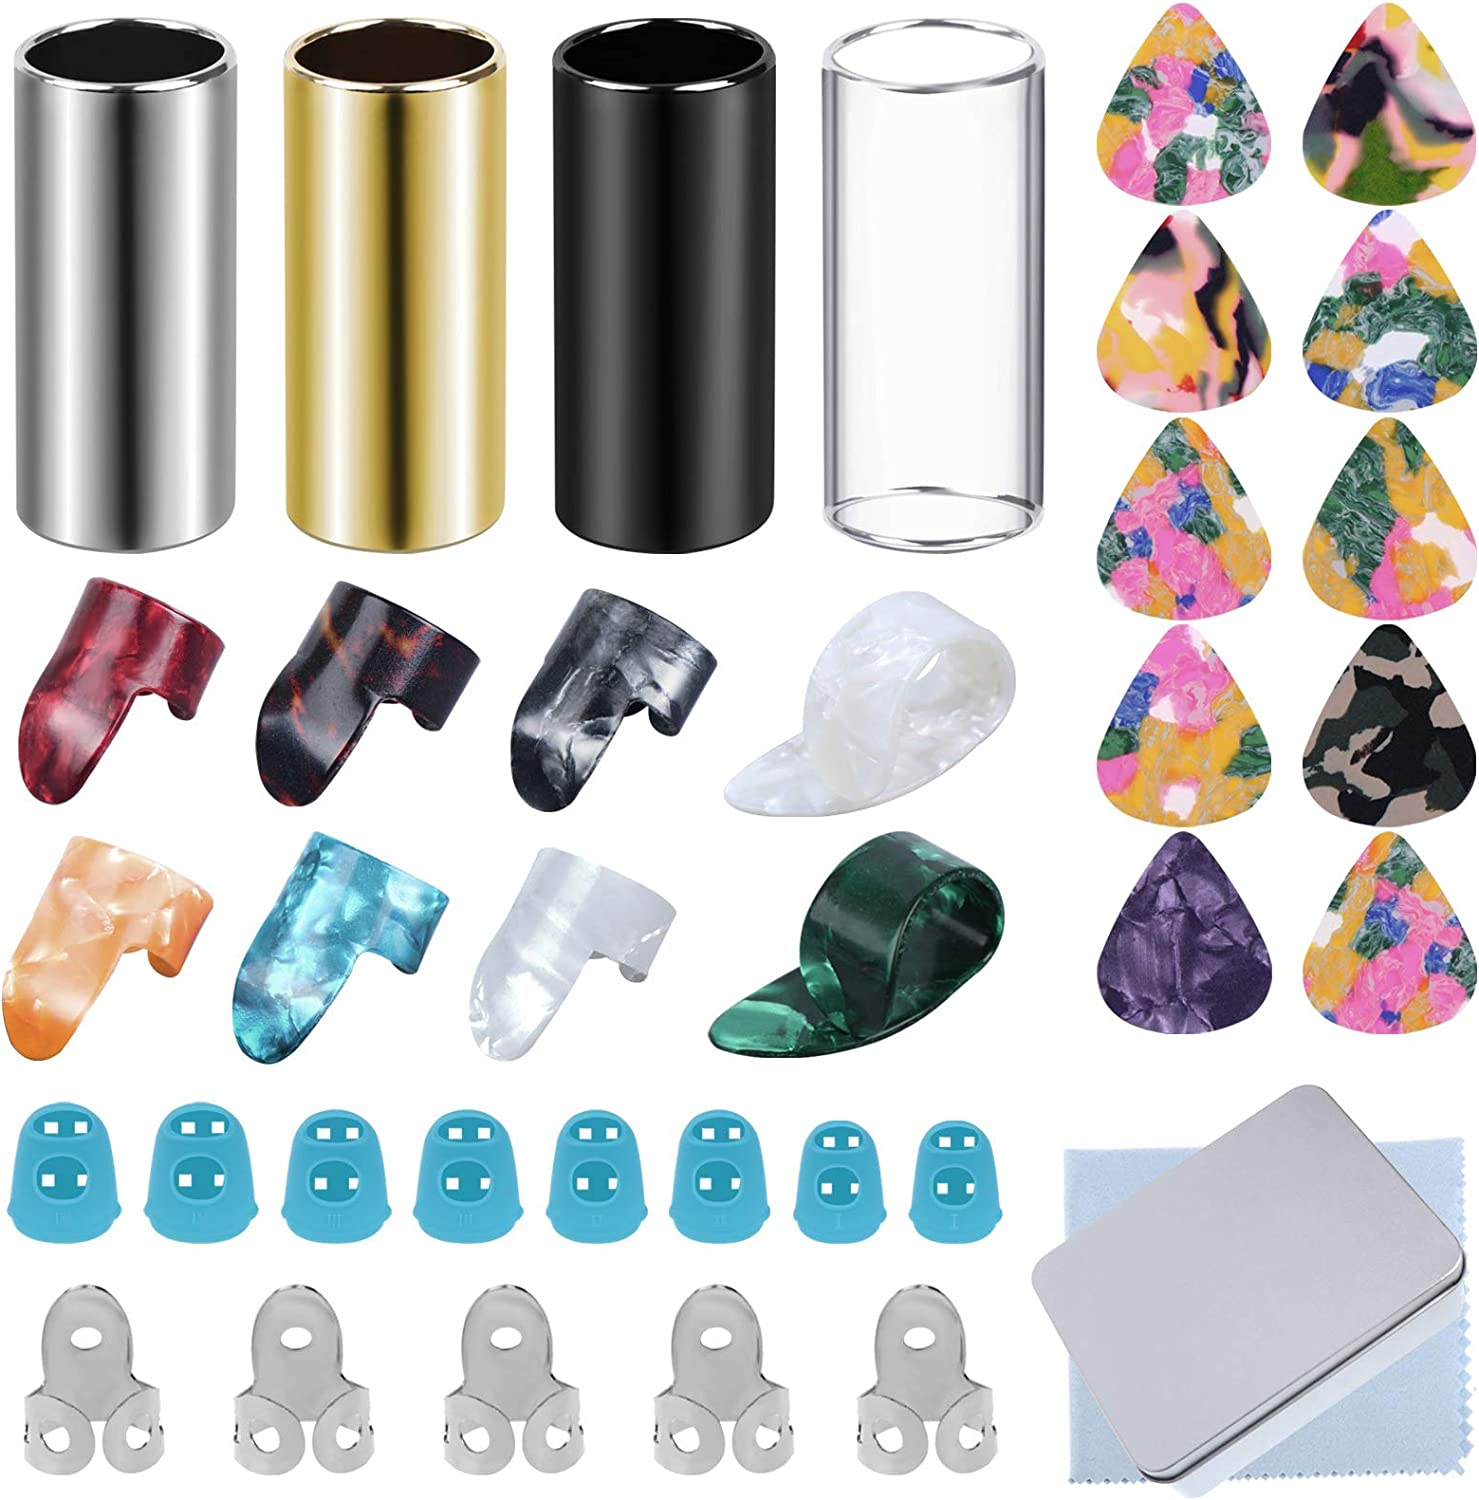 Xgood Guitar Tools Sets 4 Guita Pieces Slides Our shop OFFers the best service 10 Selling rankings